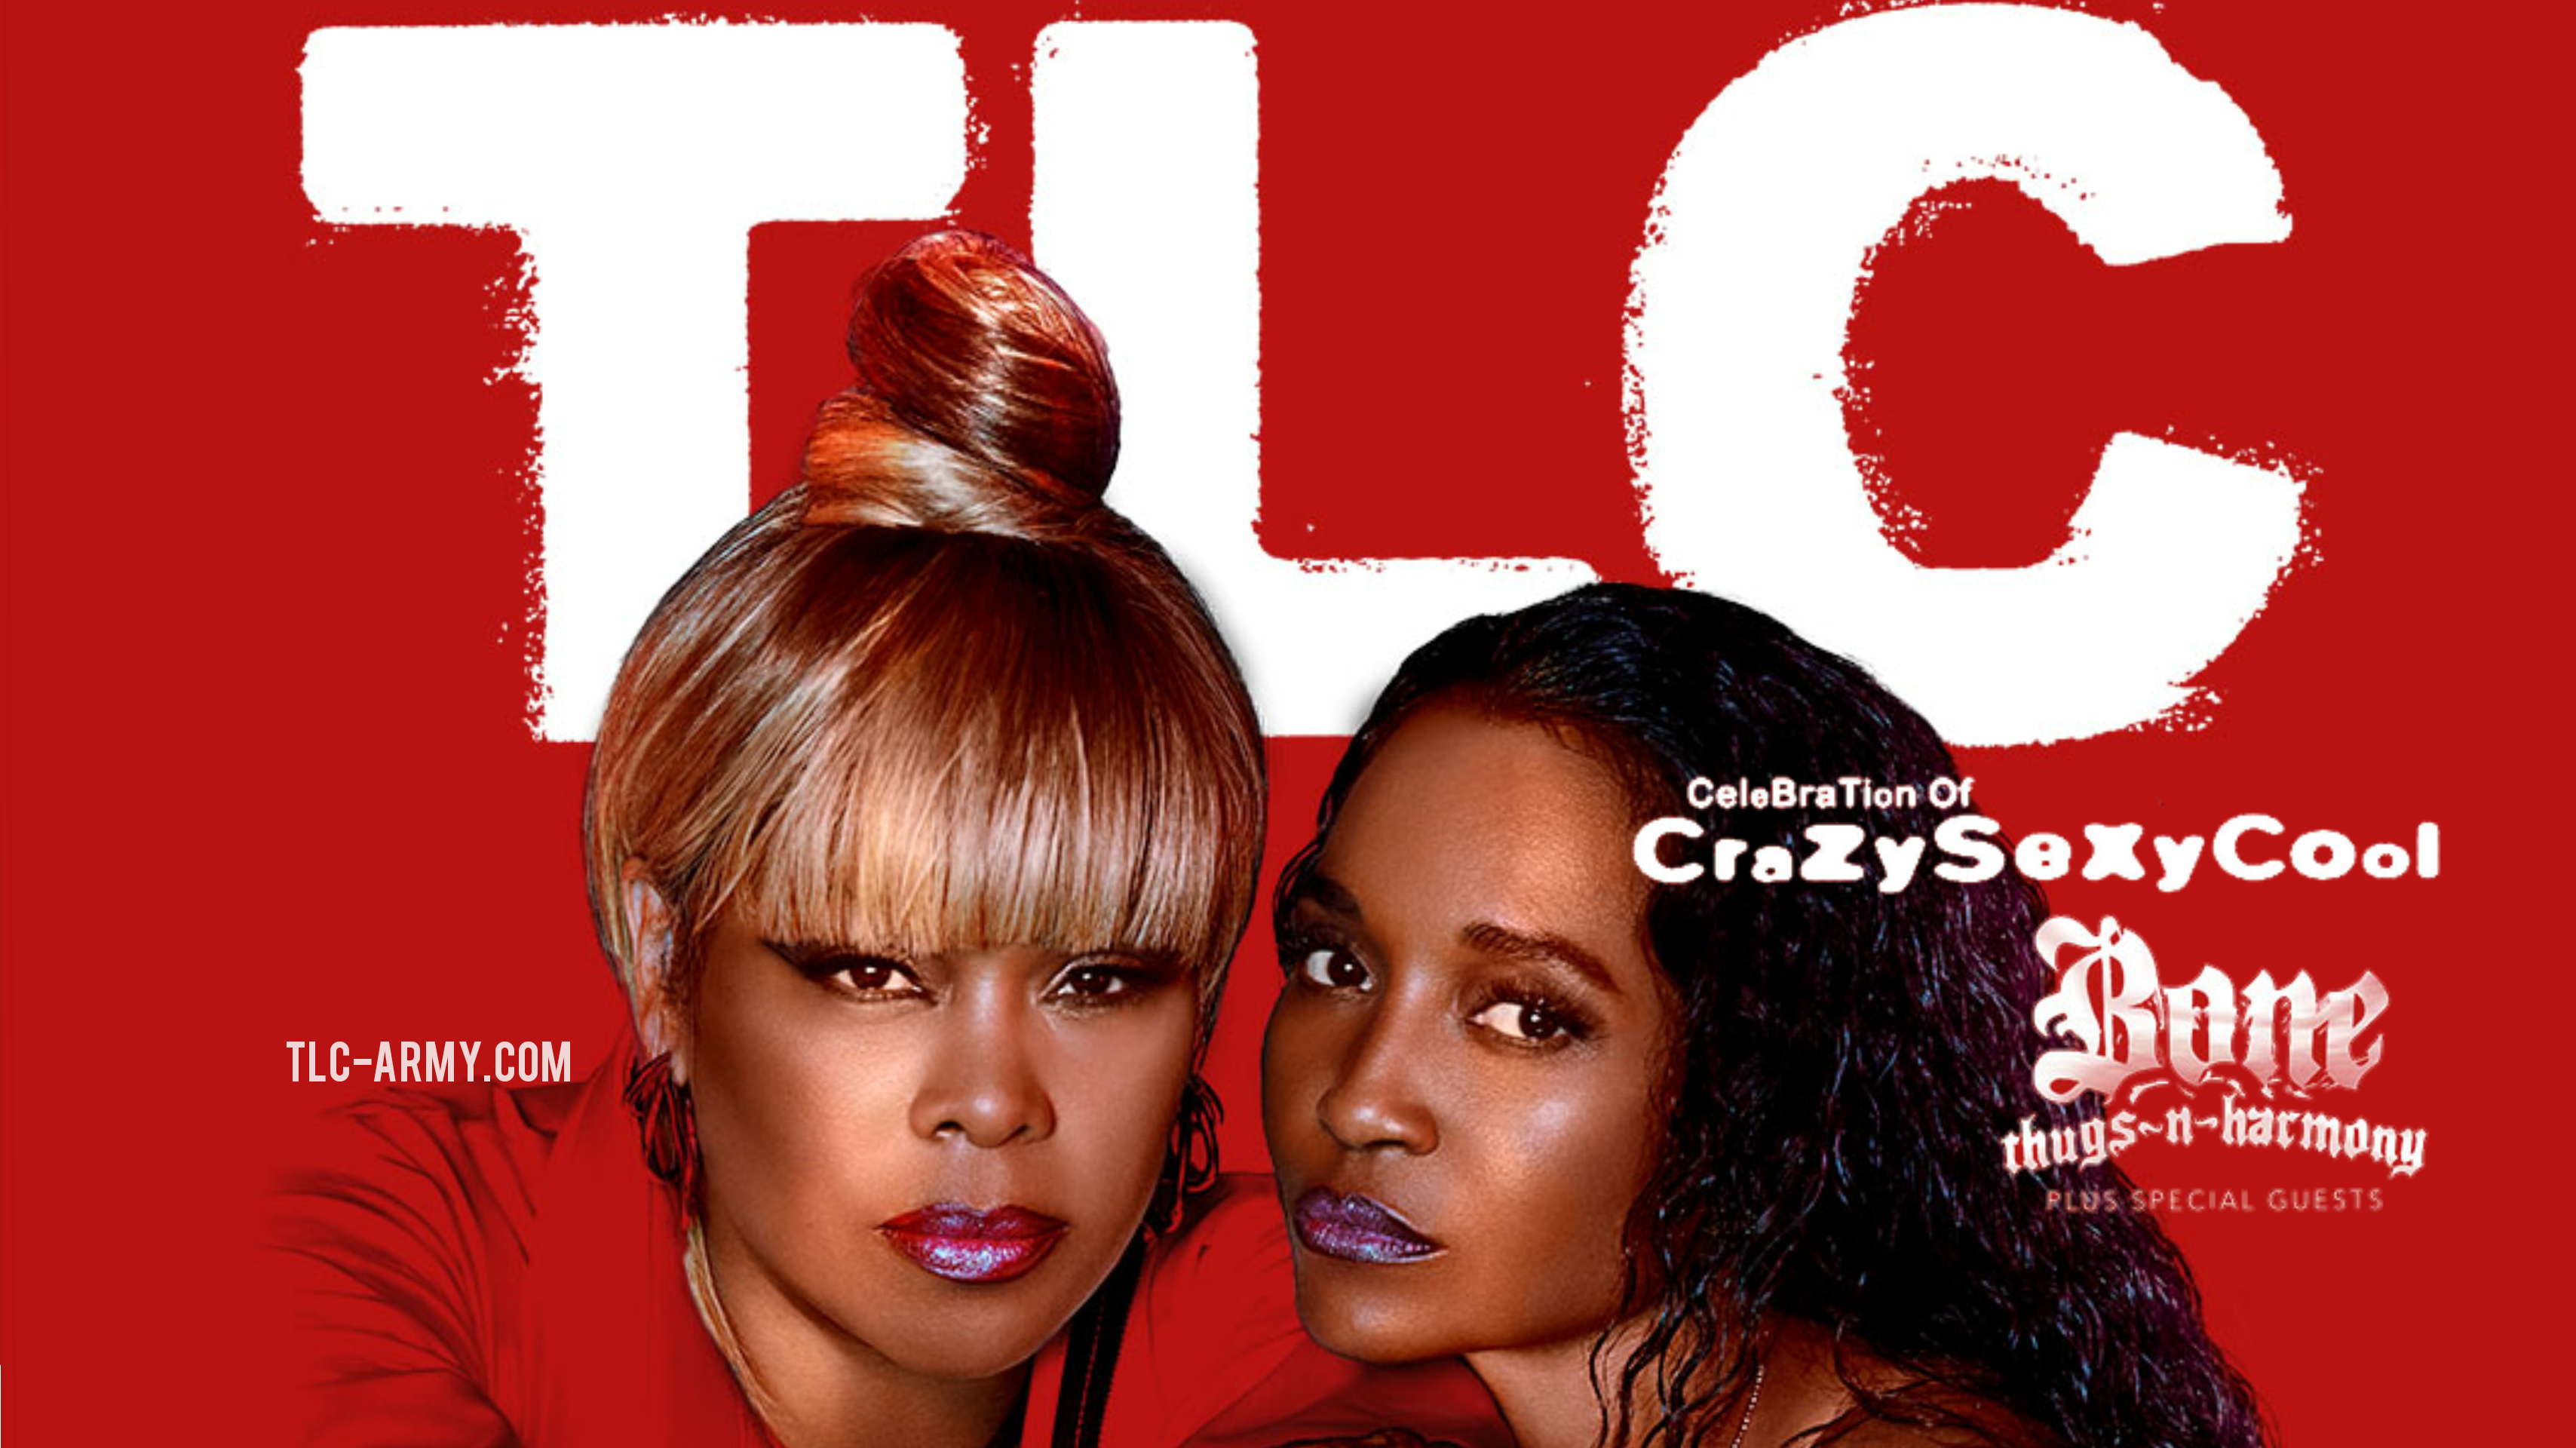 TLC Announce 'Celebration of CrazySexyCool' 2021 Tour With Bone Thugs-N-Harmony